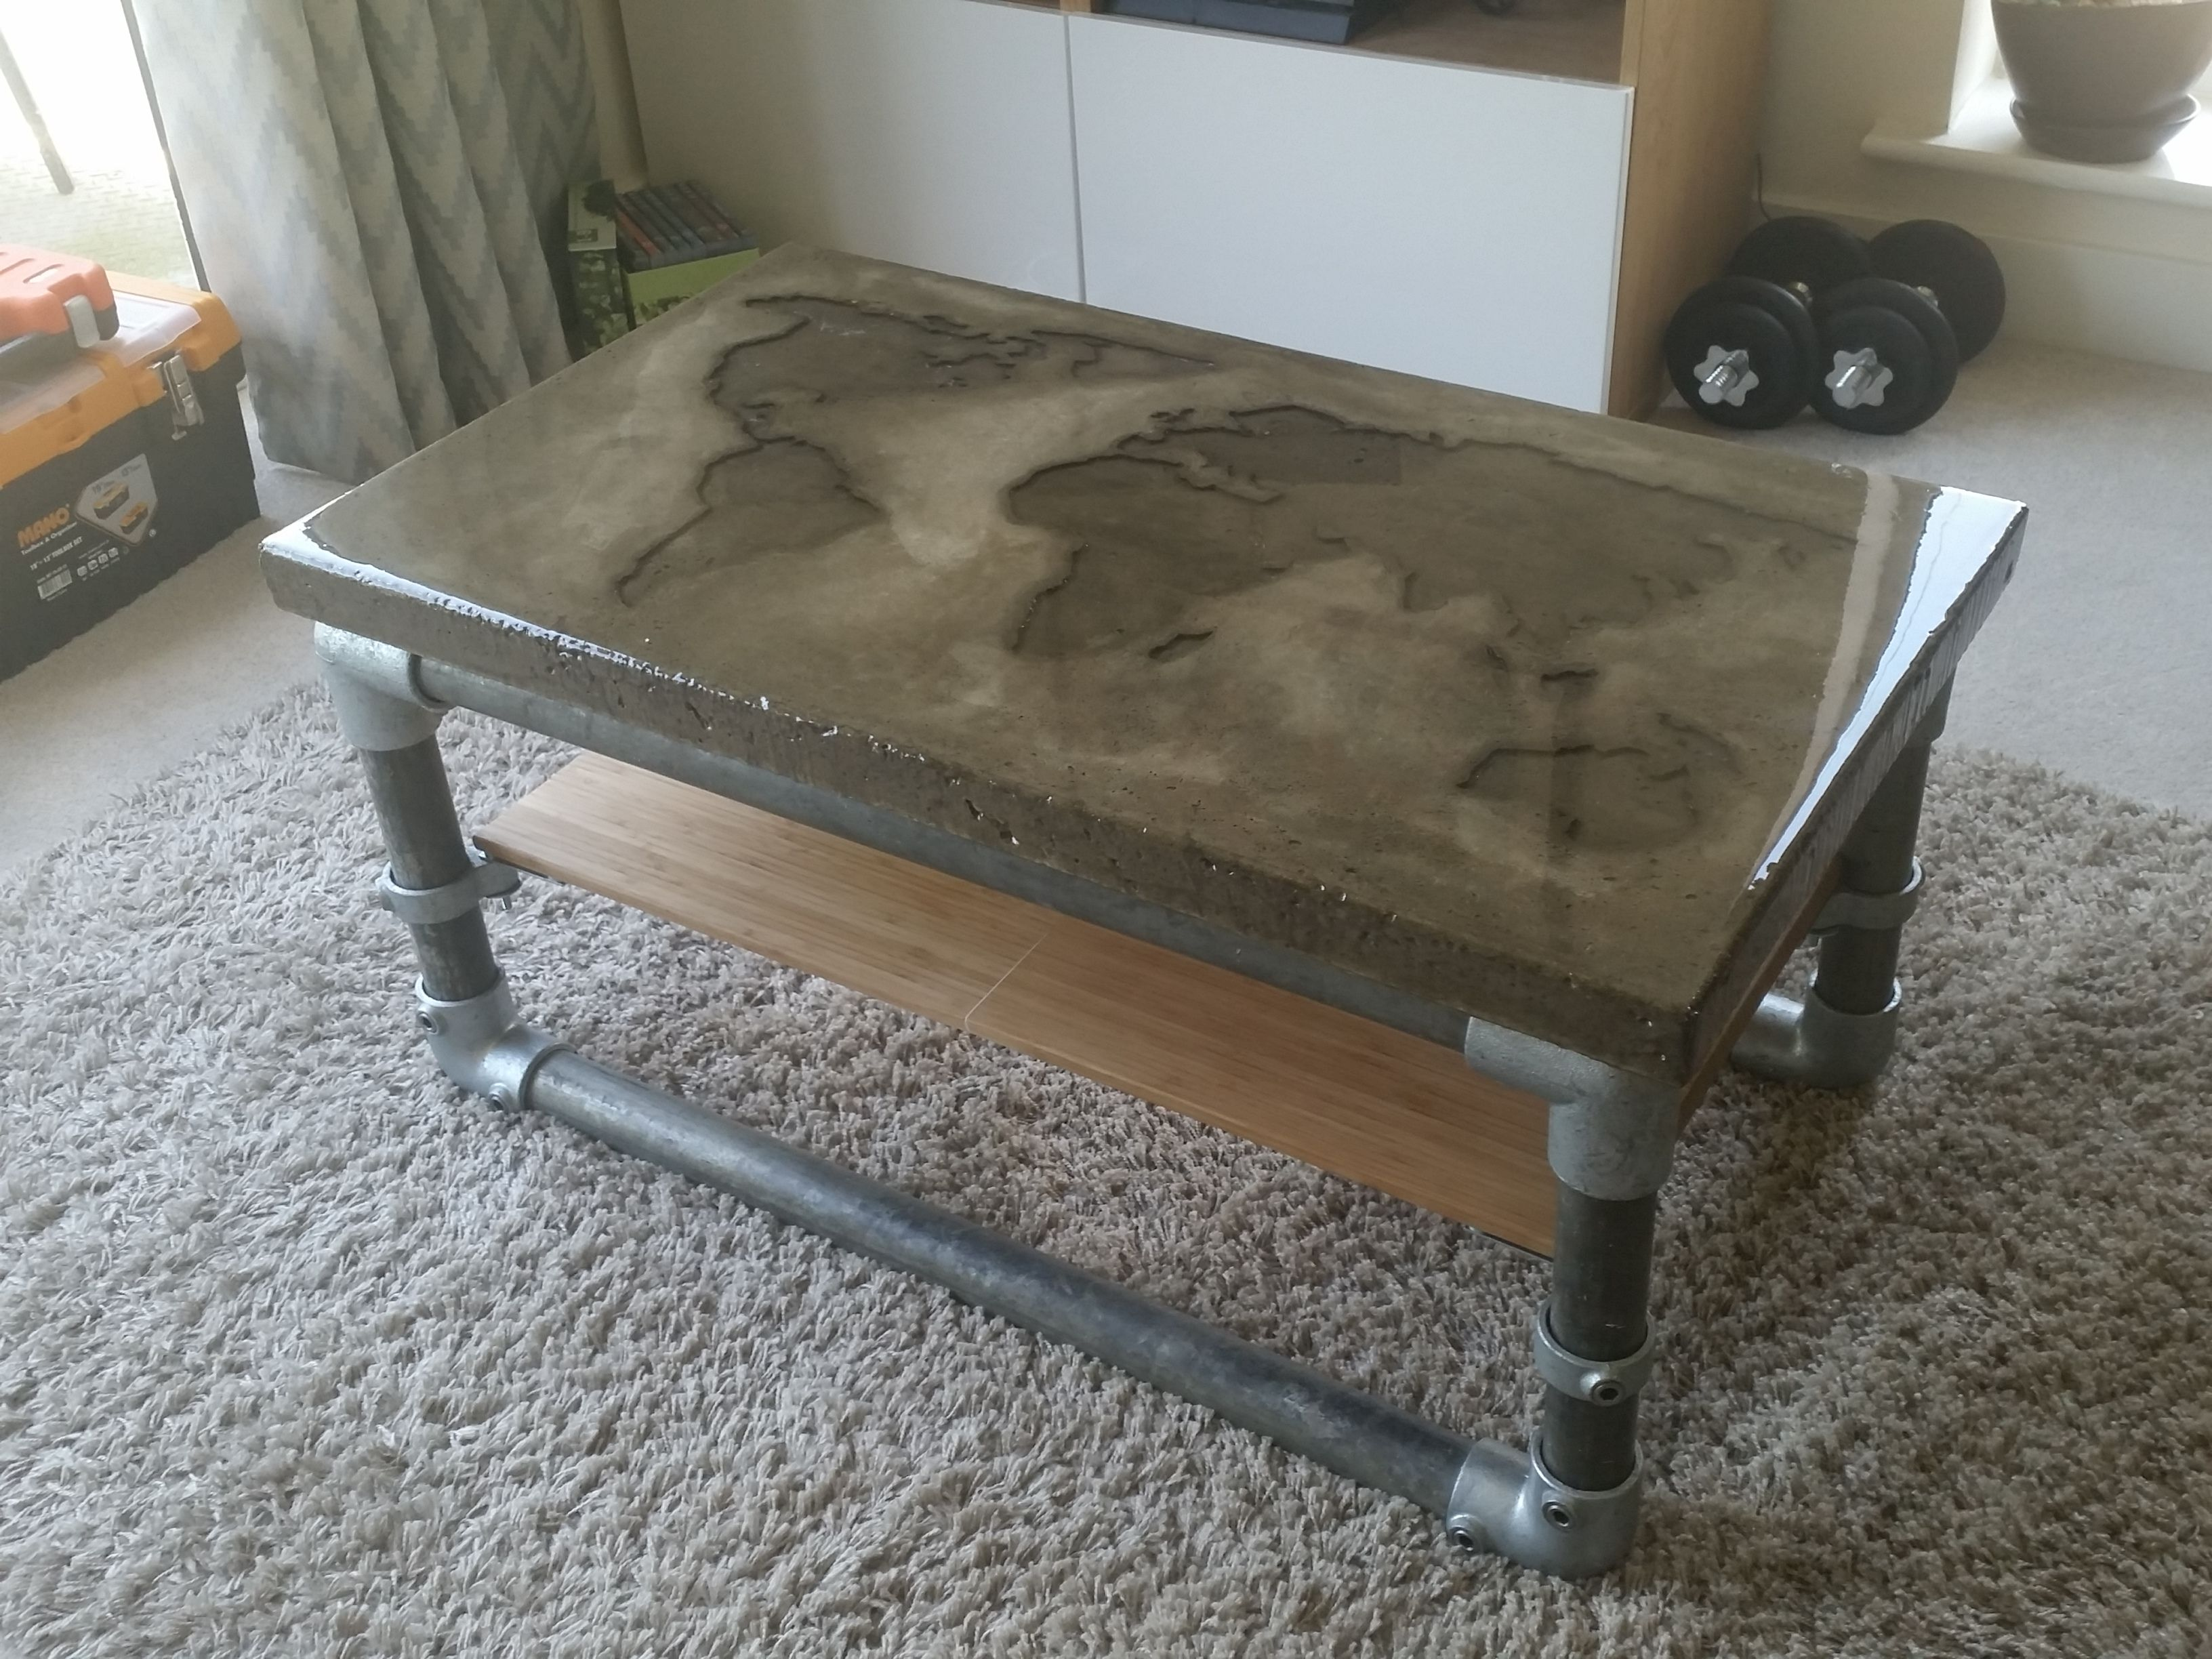 Concrete Table Top I Made A Concrete Coffee Table With A Recessed World Map